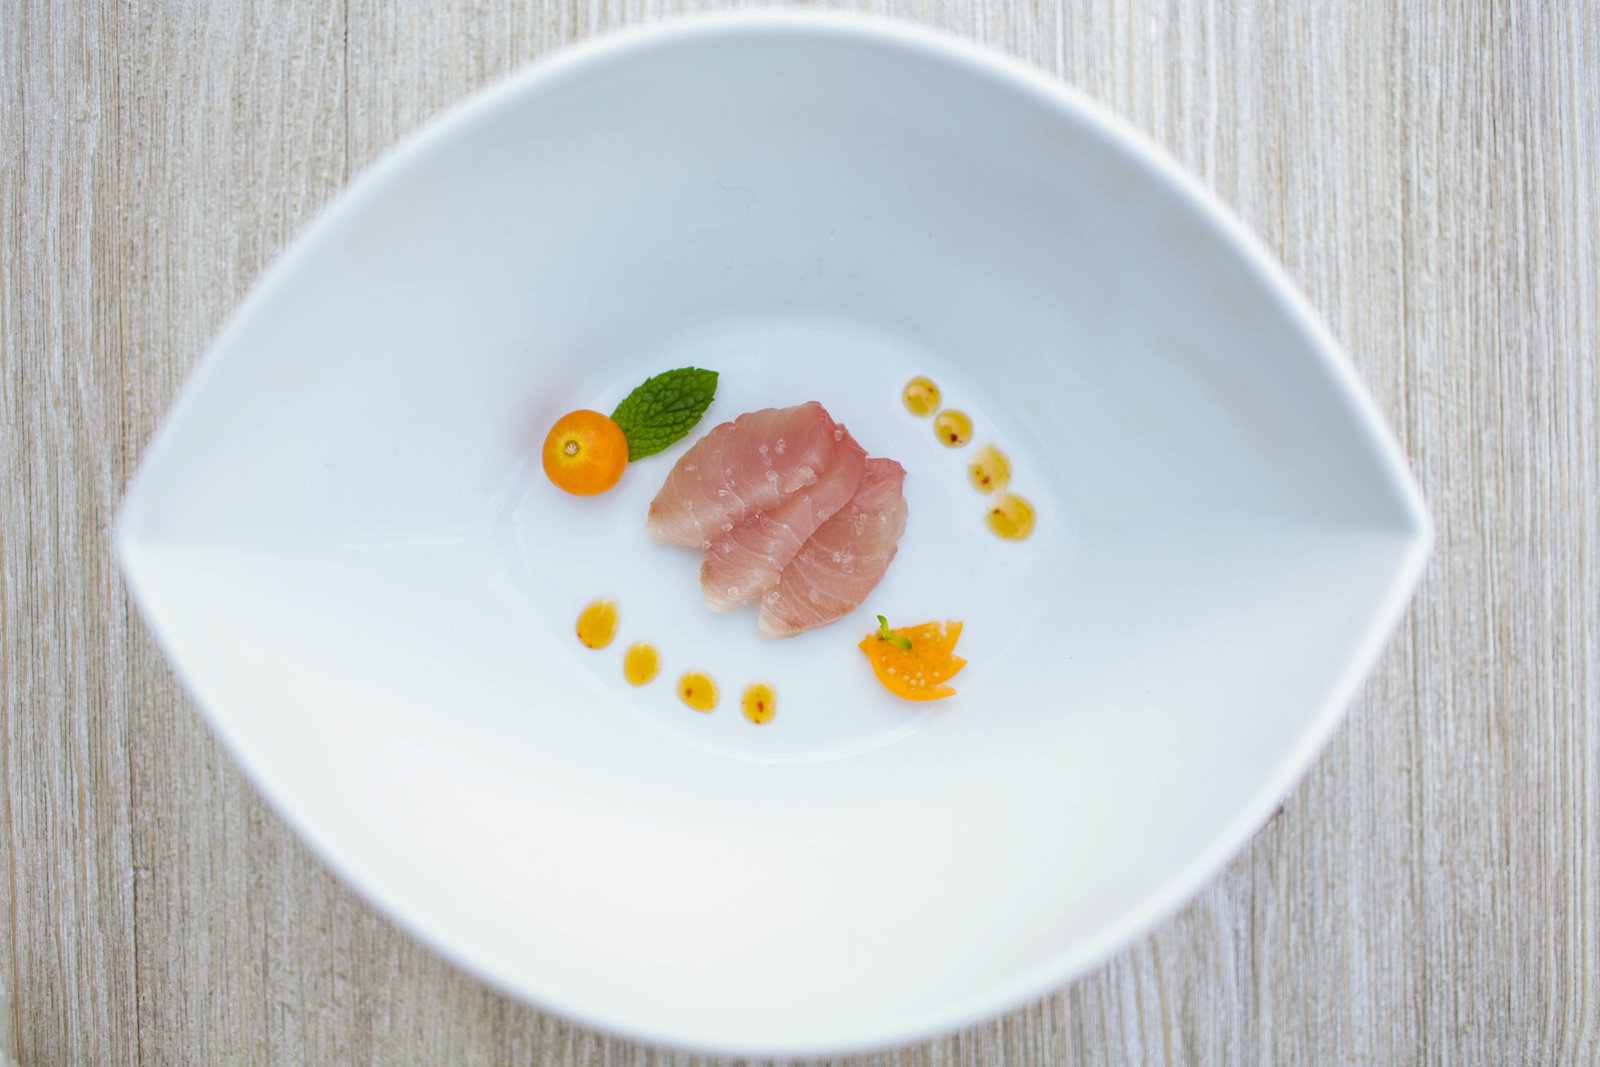 Sashimi is styled and photographed by Charleston food Photographer, Kate Timbers.